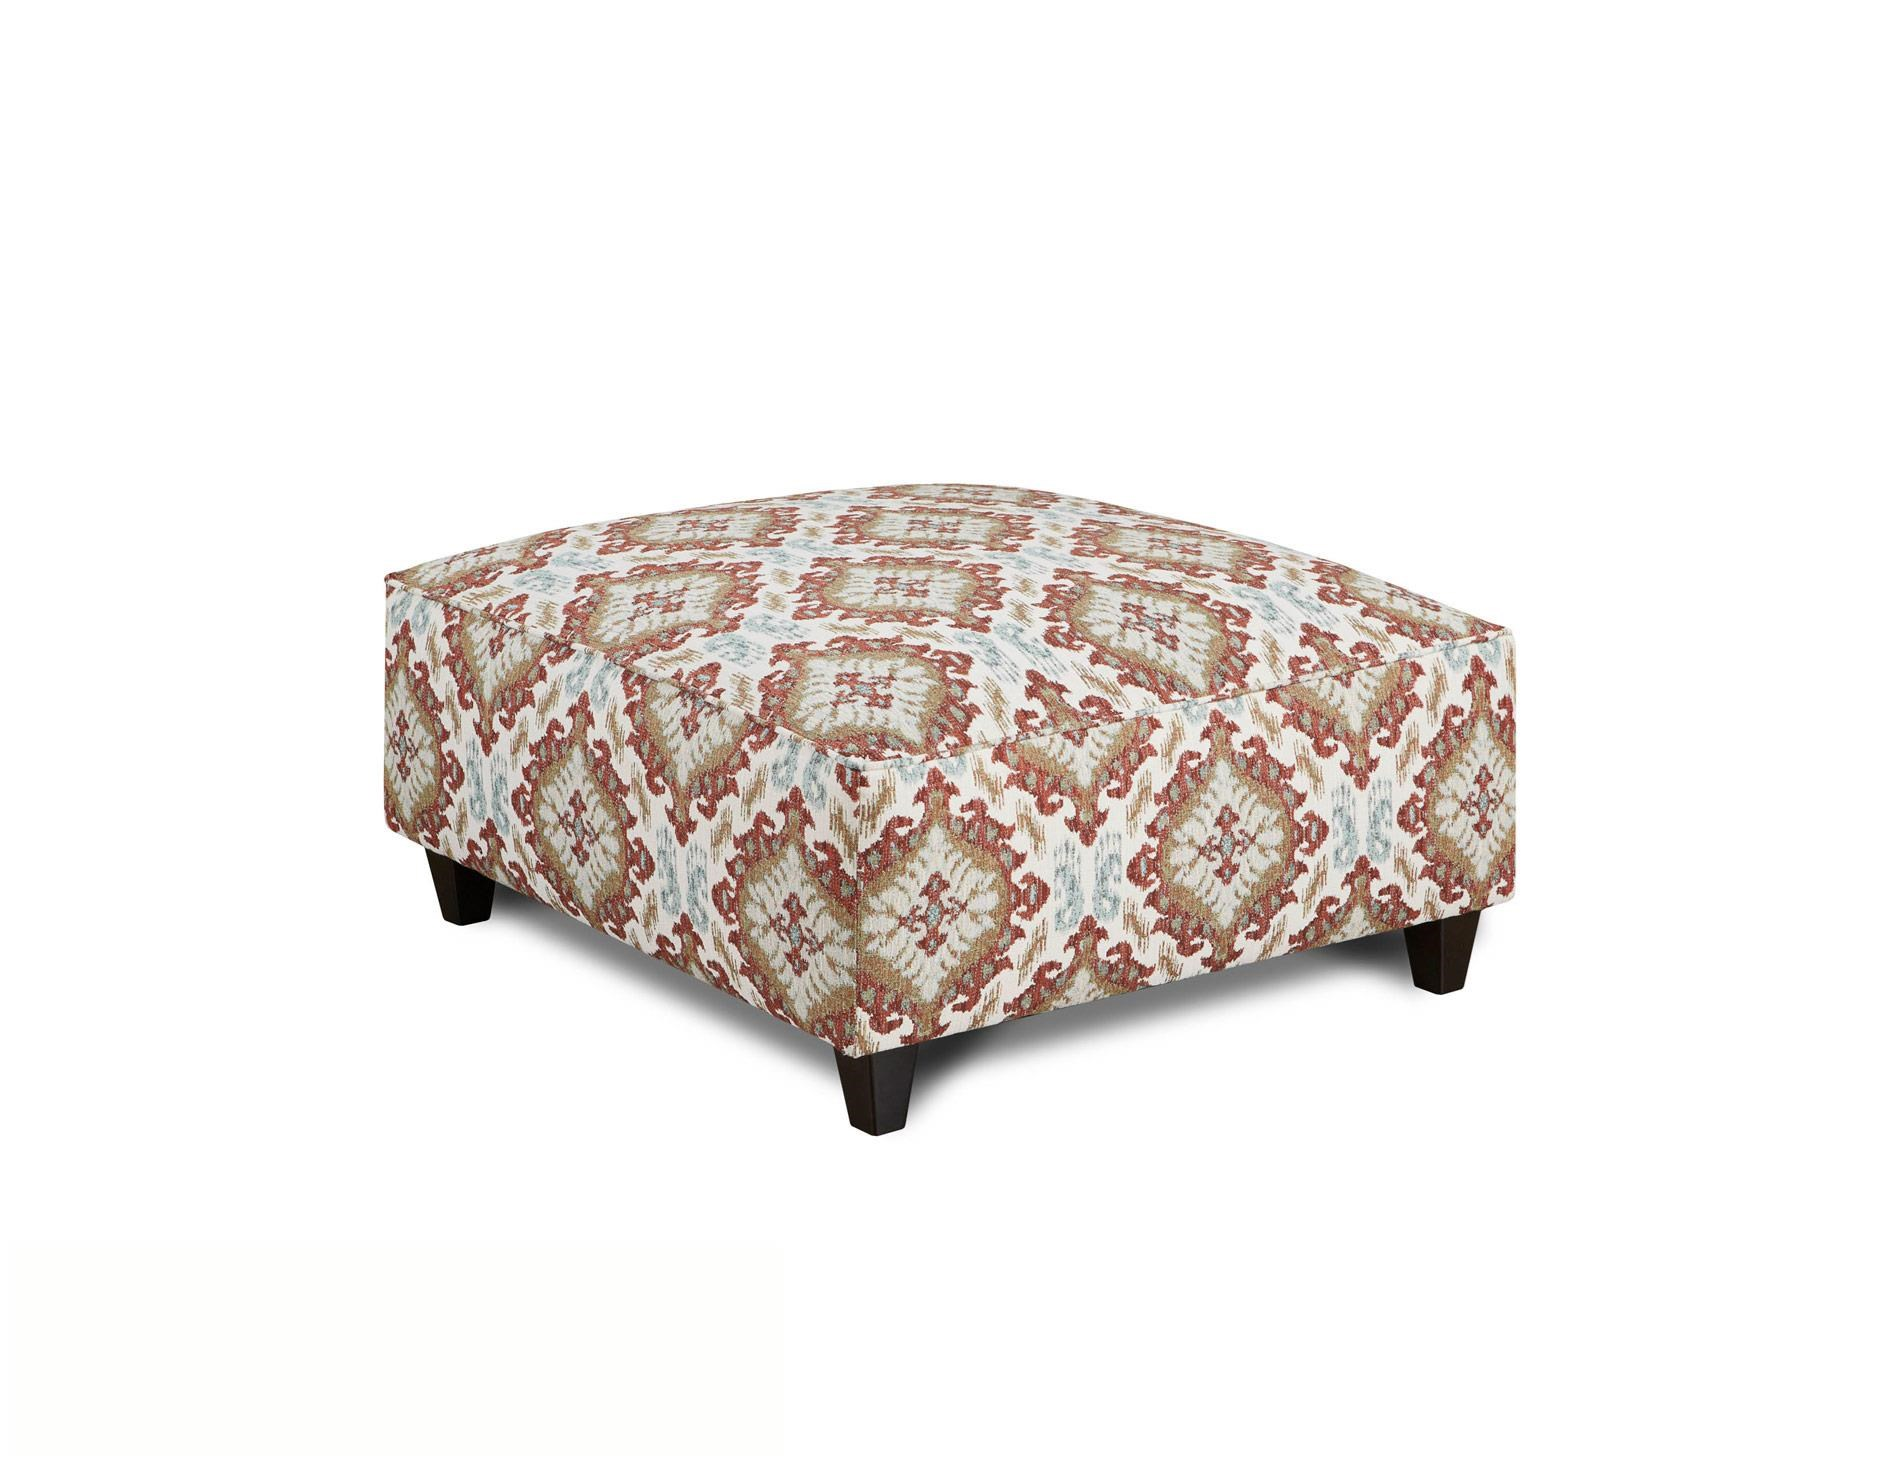 Fusion Furniture Quinn Twilight Samara Citrus Cocktail Ottoman - Item Number: 109-SAMARA-CITRUS